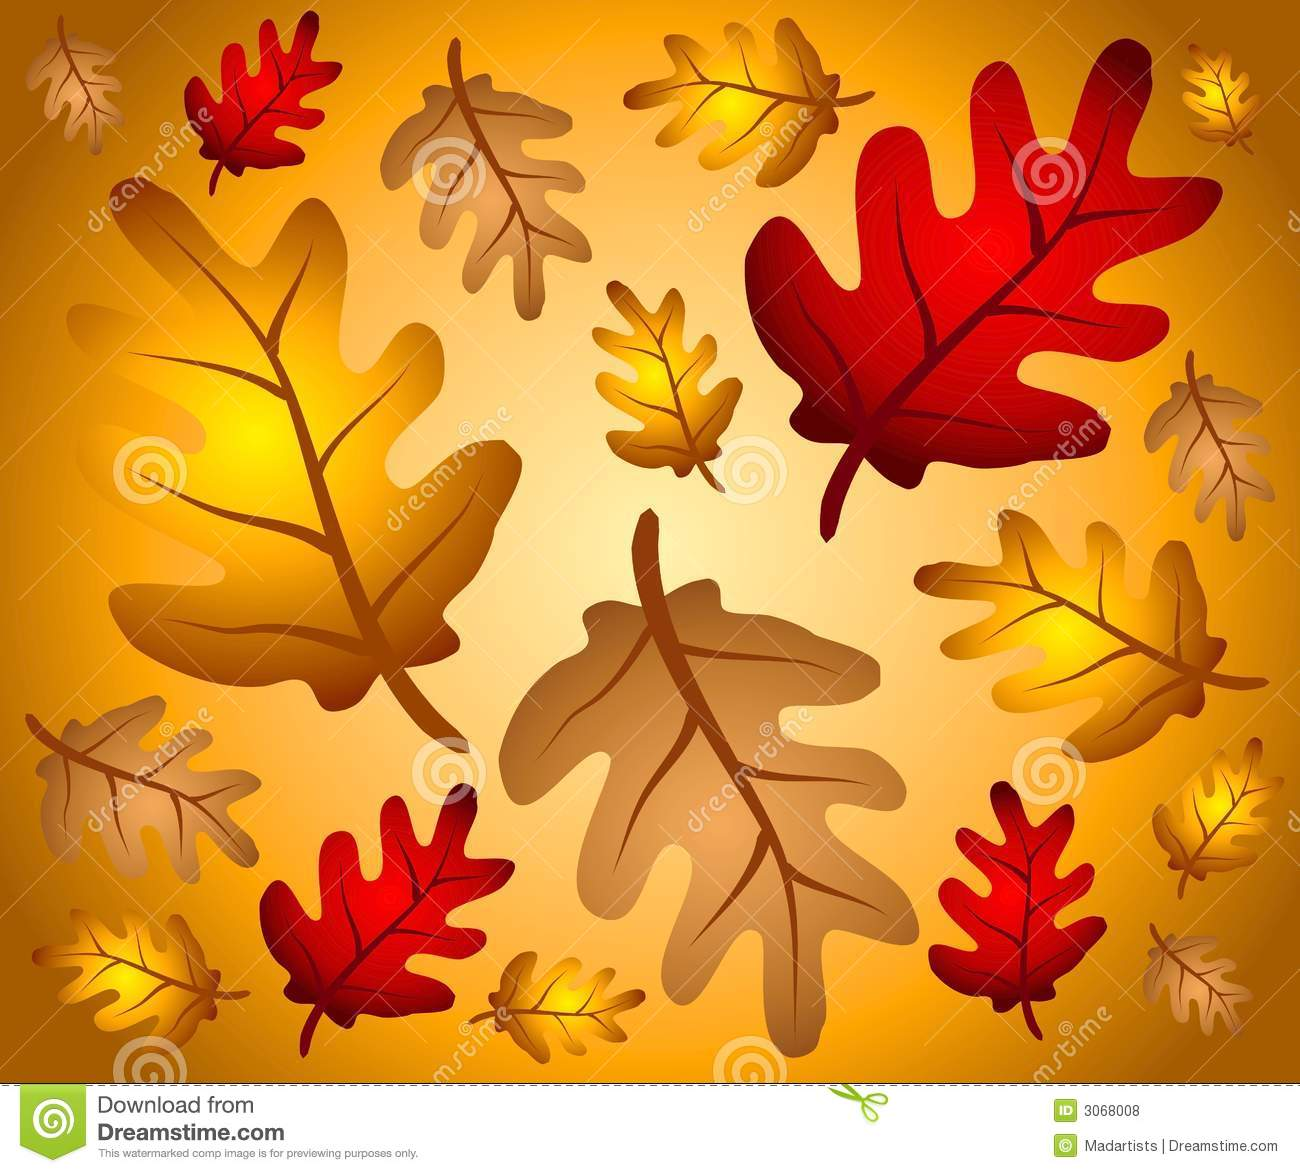 Hd Wallpaper Texture Fall Harvest Fall Oak Leaves Background 2 Royalty Free Stock Photos